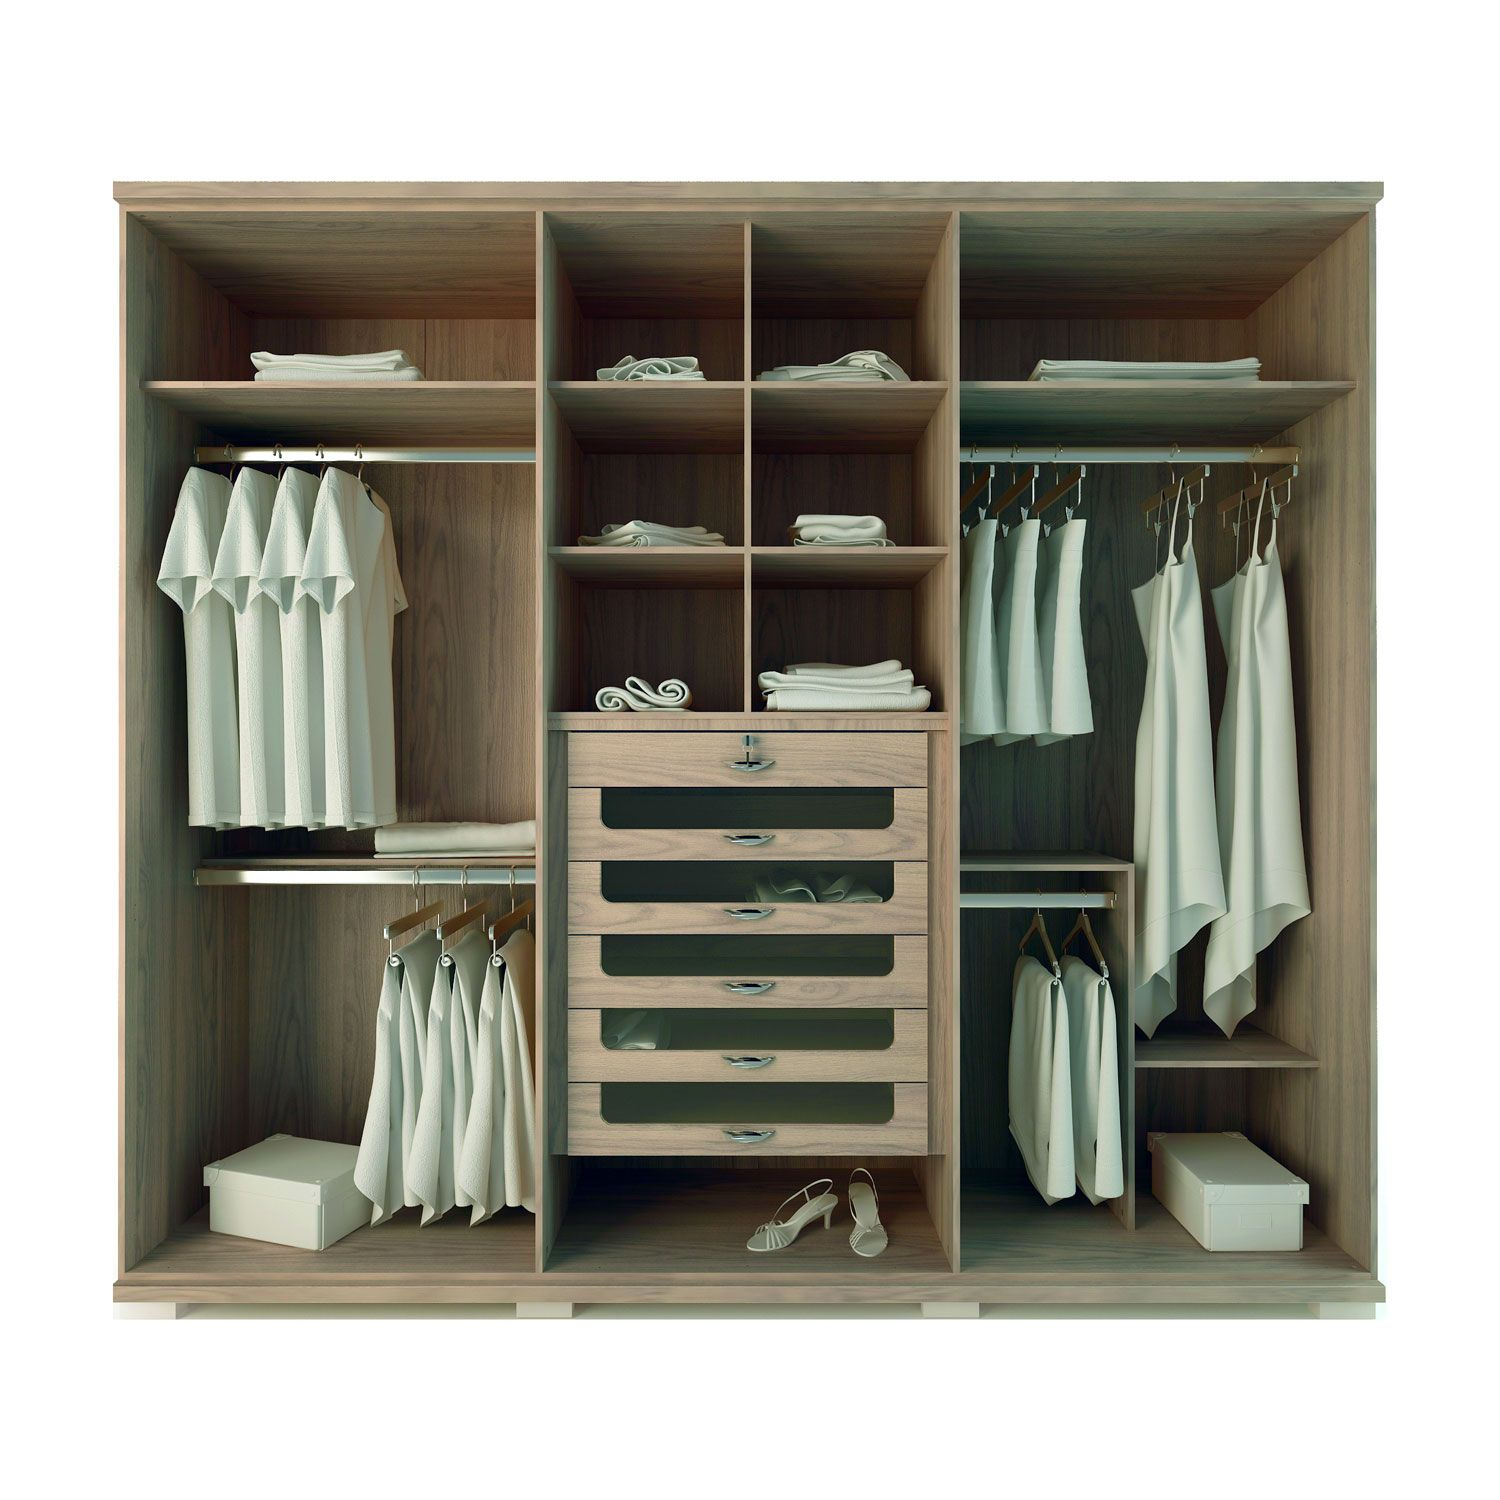 suppliers showroom wood manufacturers wardrobe hanging rack at alibaba com and coat garment stand clothes wooden